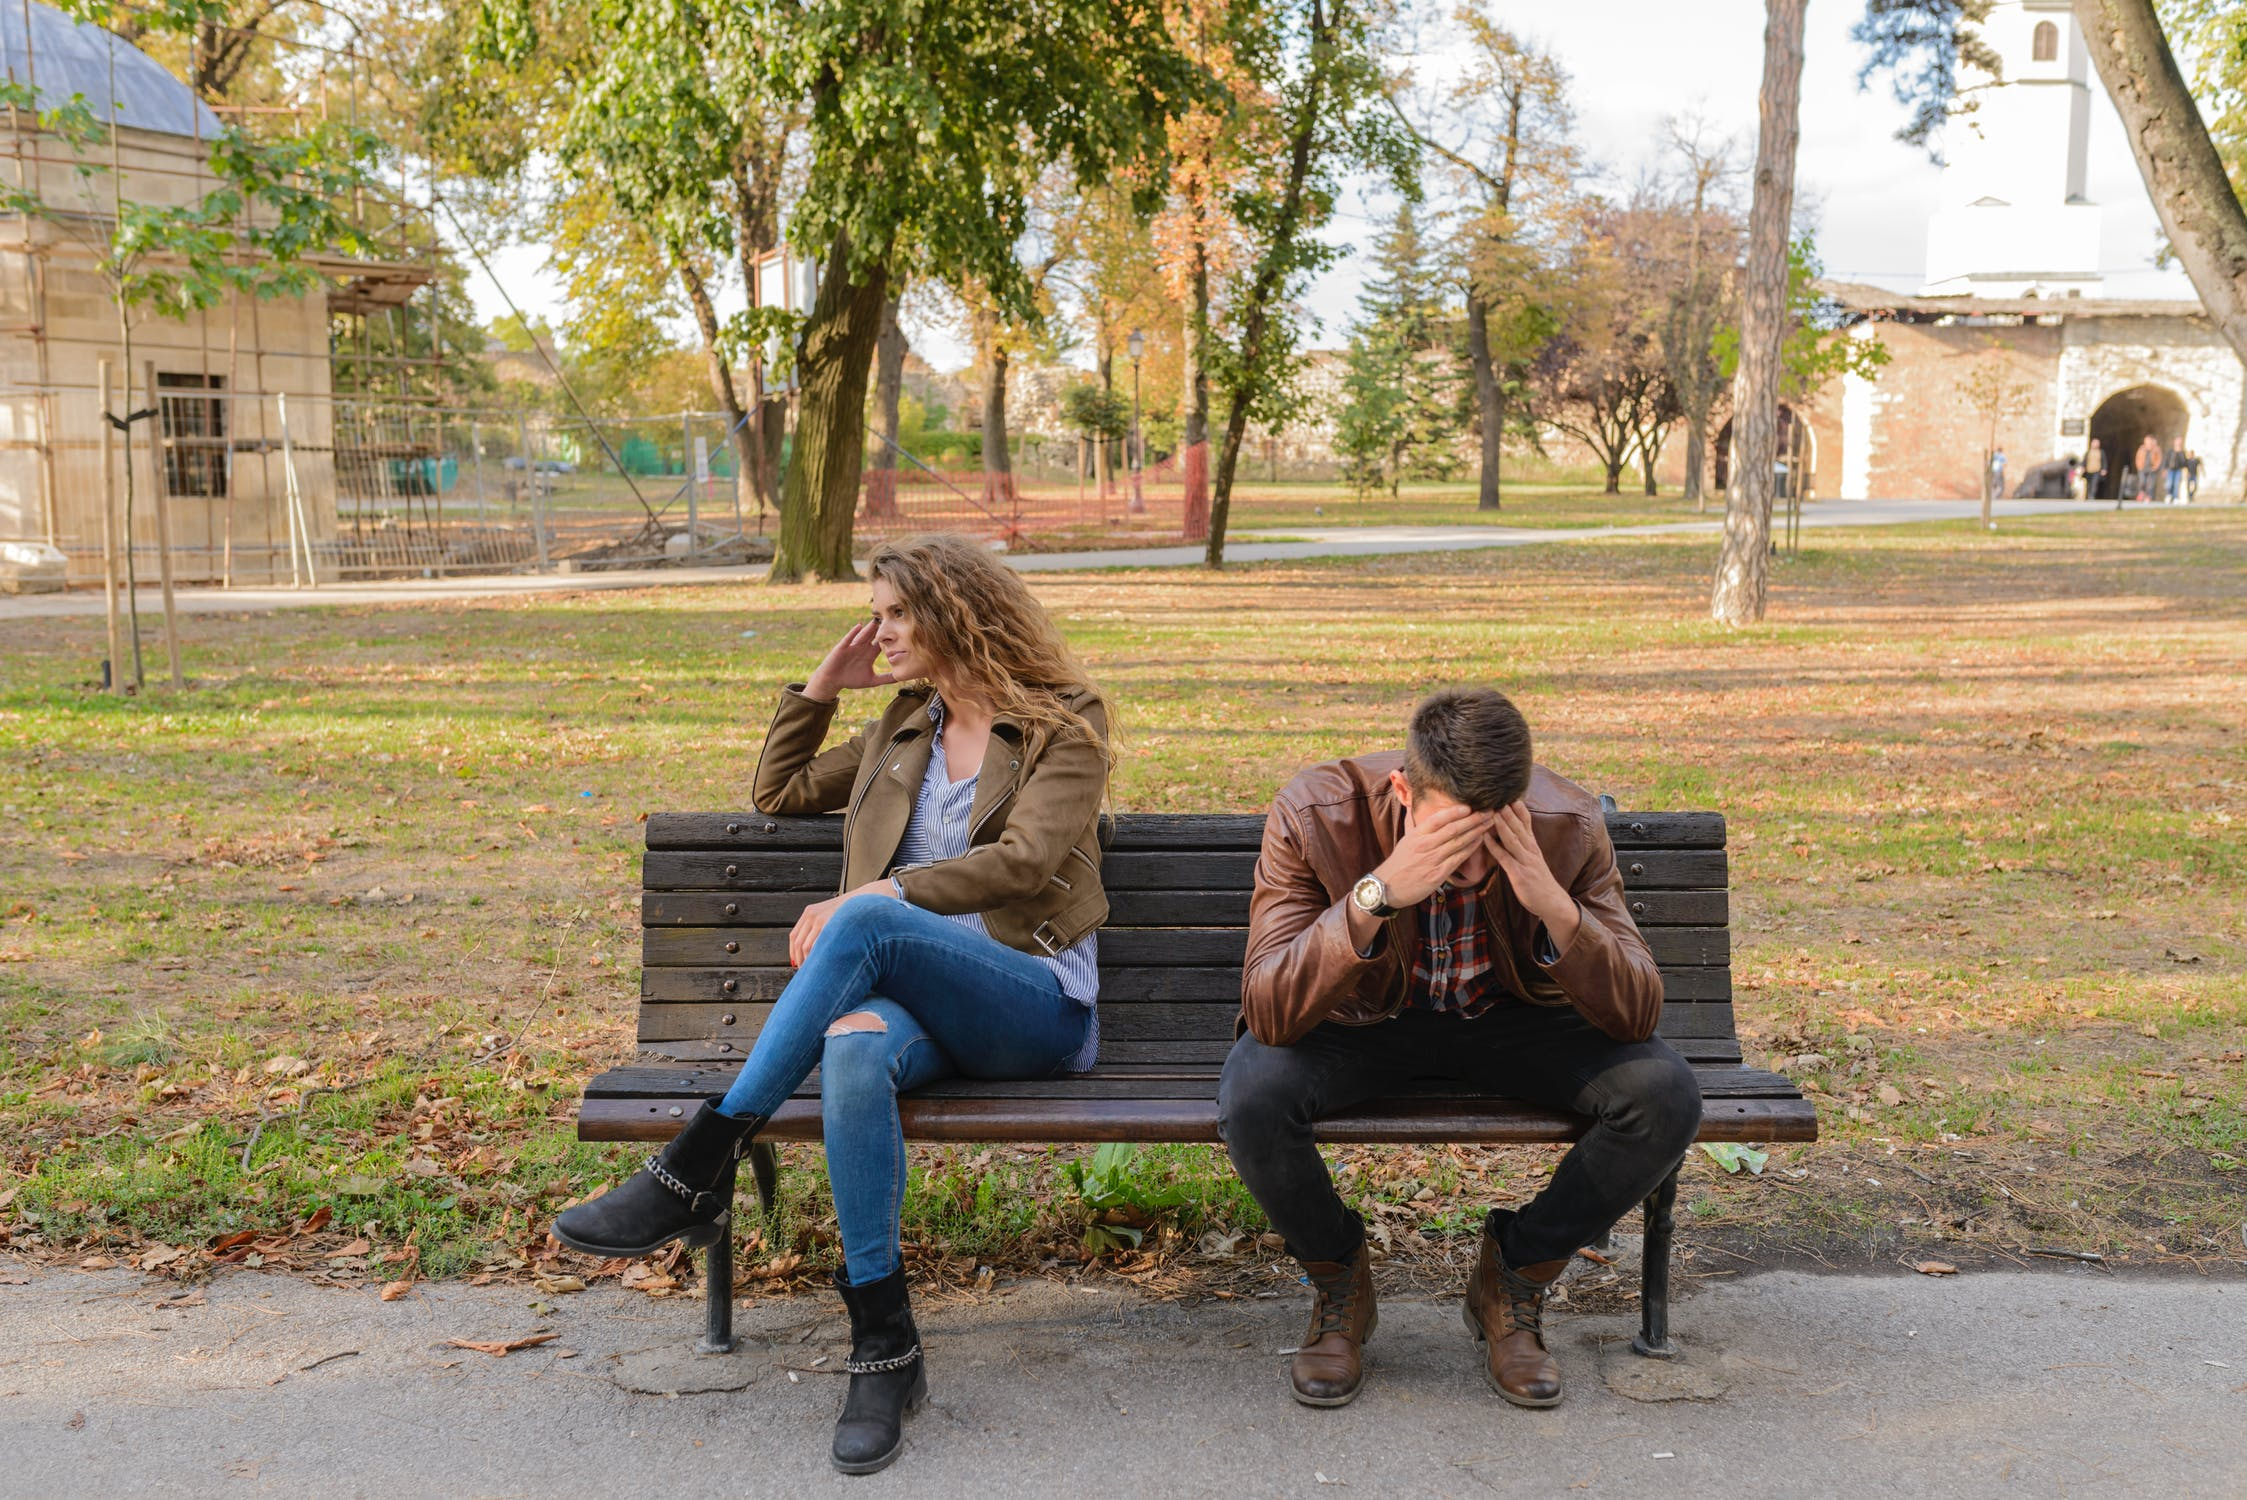 How to save a relationship after lying